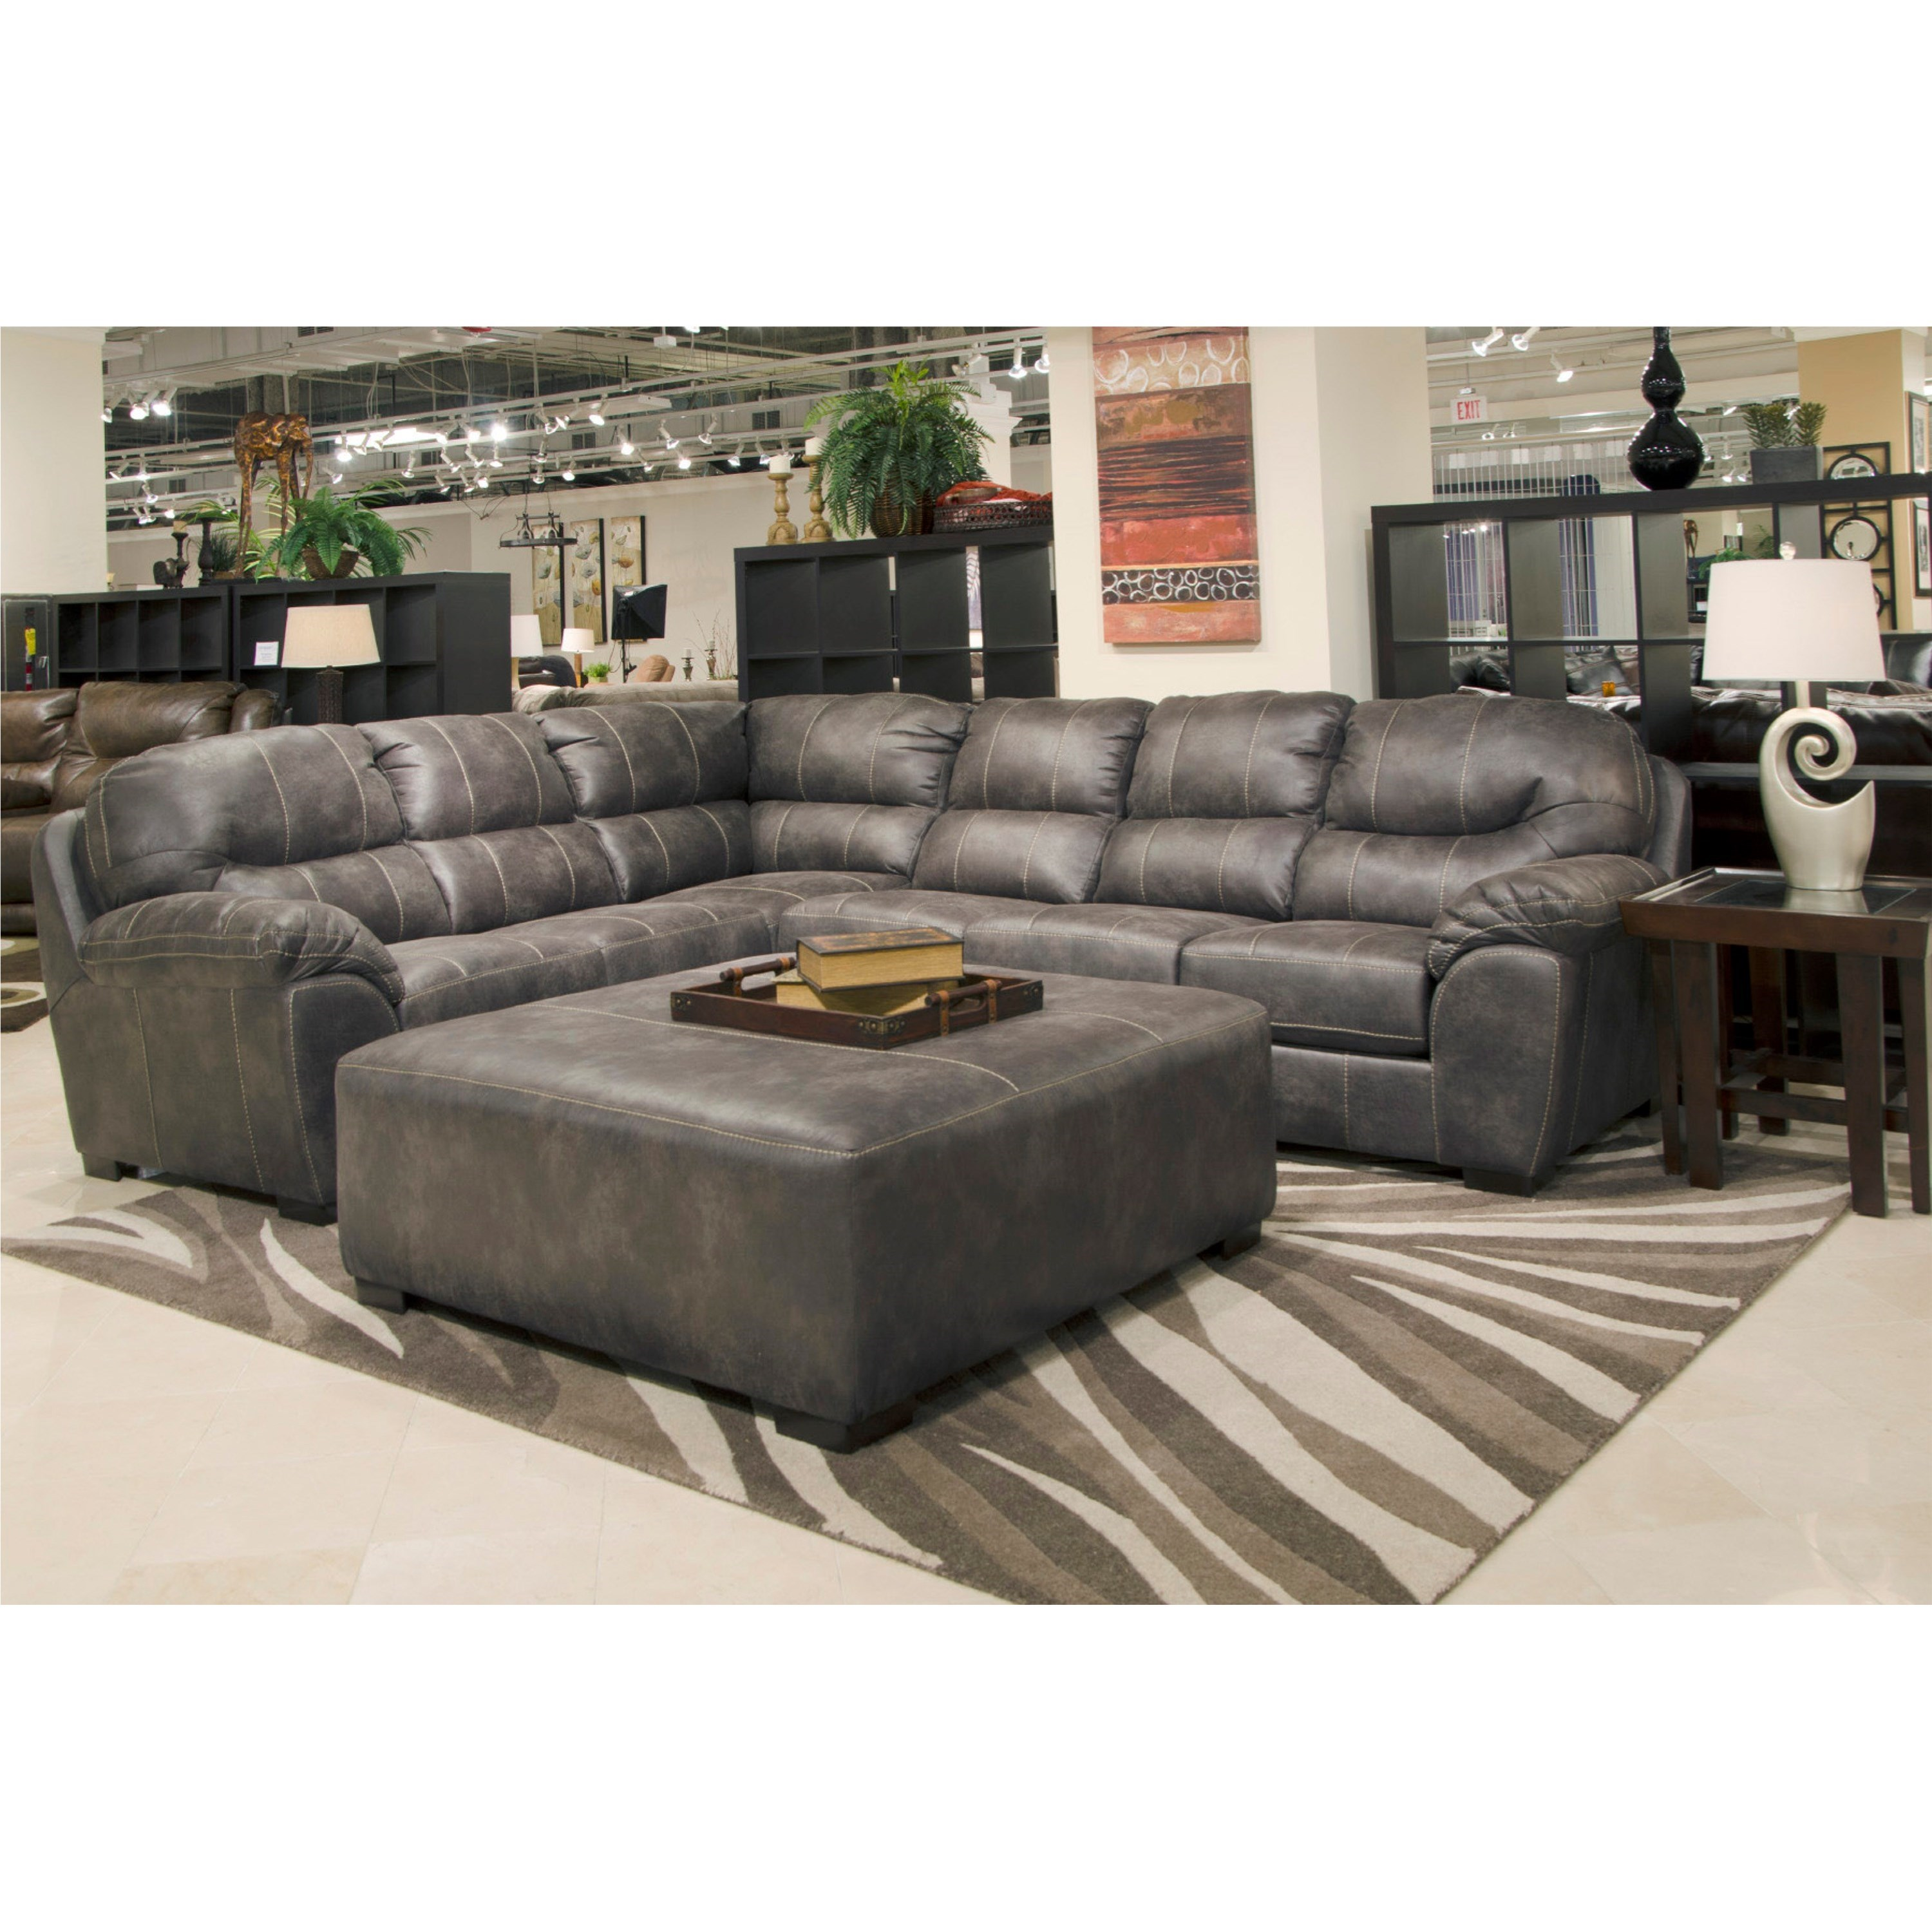 Sectional Sofa  sc 1 st  Wolf Furniture : jackson sectional - Sectionals, Sofas & Couches